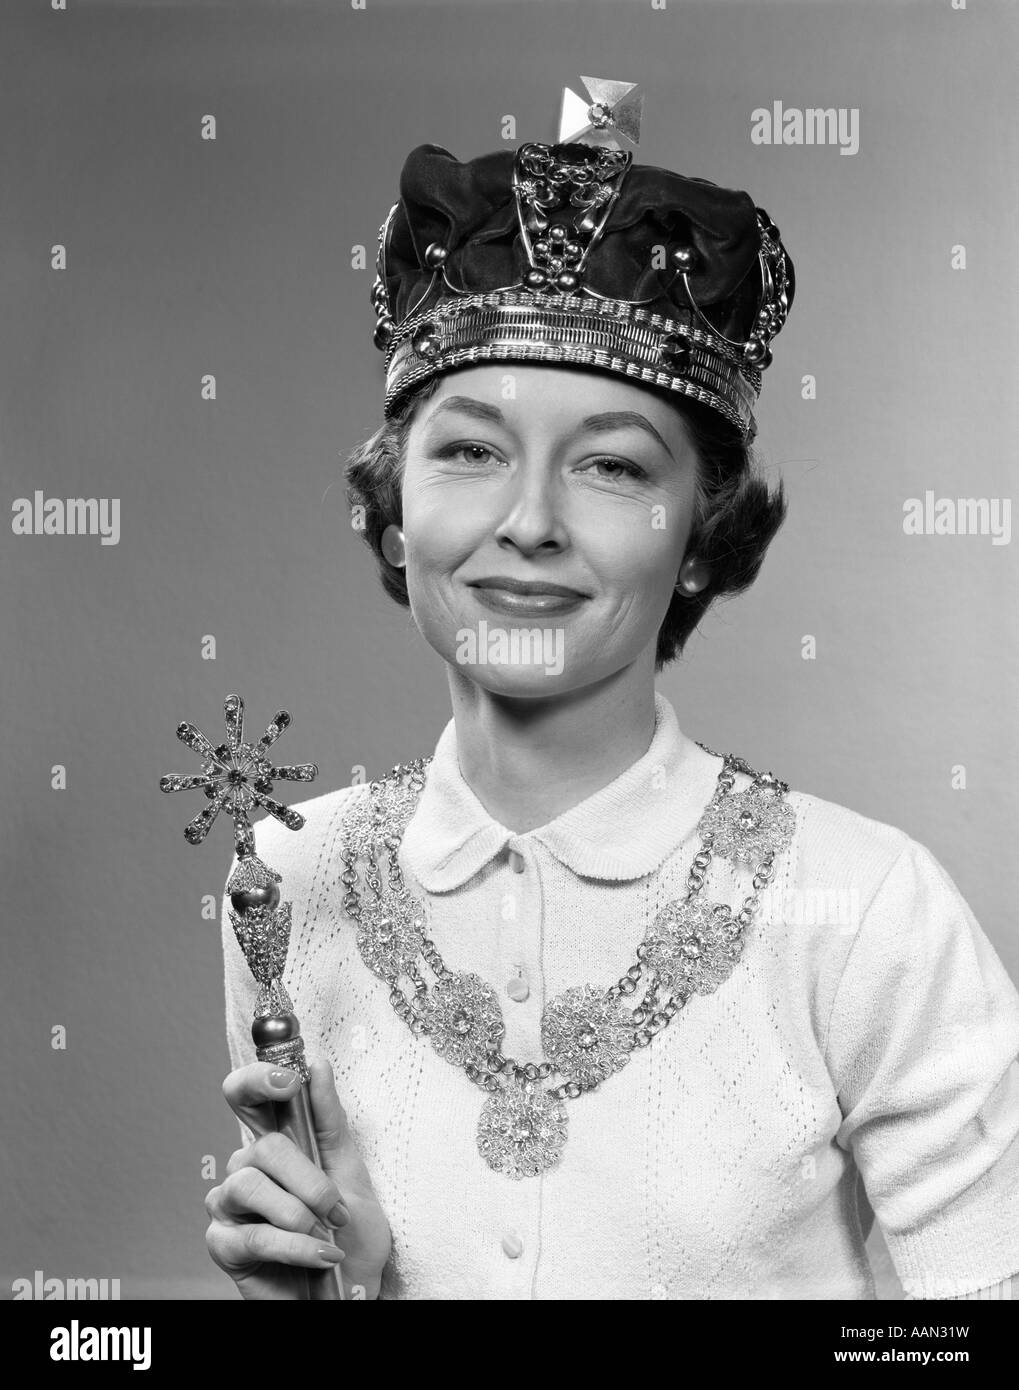 1950s queen for a day woman wearing royal crown holding scepter stock photo royalty free image. Black Bedroom Furniture Sets. Home Design Ideas